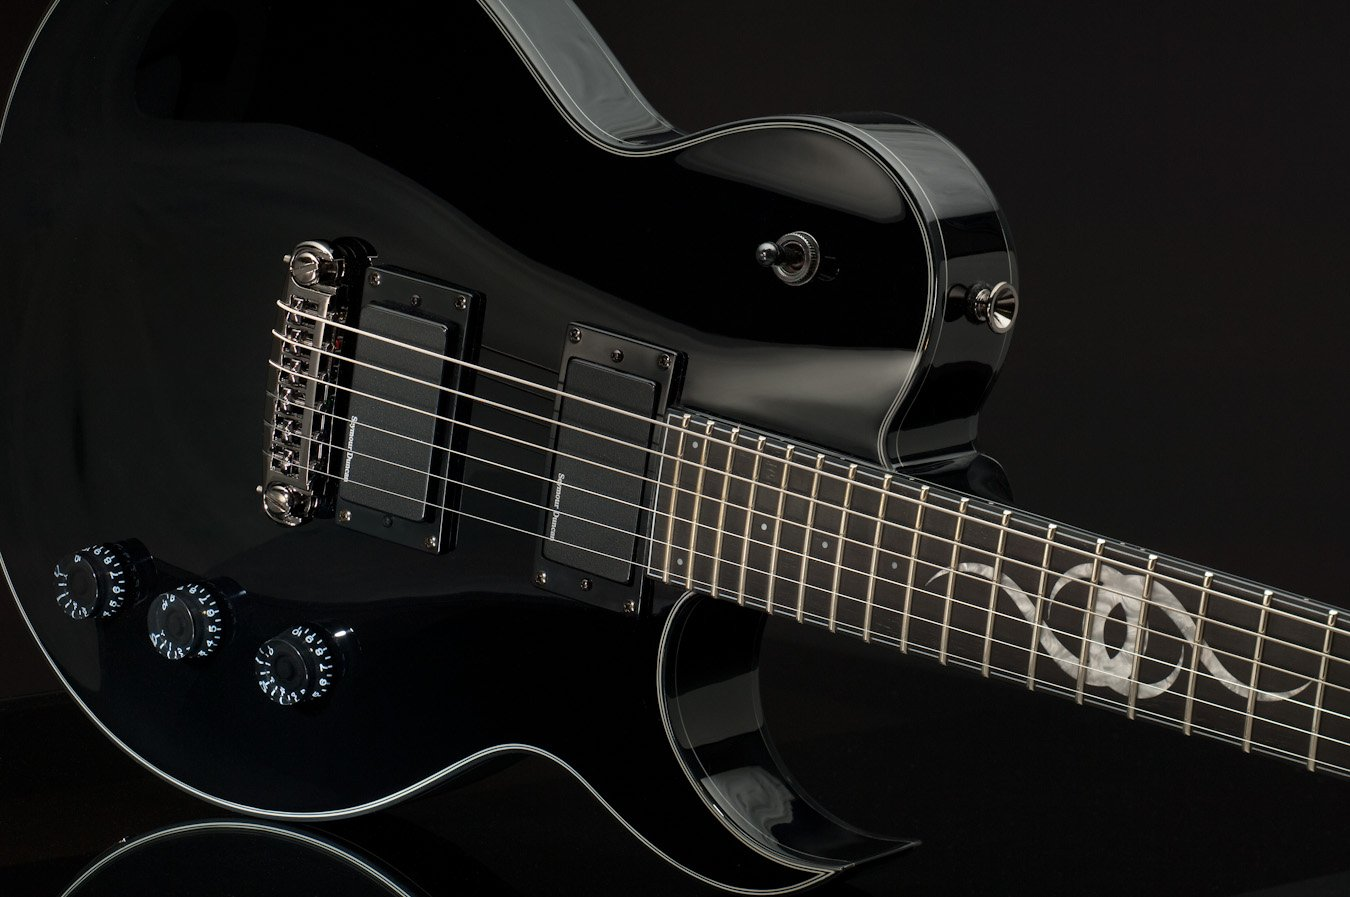 Cheap Ethan Hart Guitar EH-1 Black Single Cutaway with White Binding Black Friday & Cyber Monday 2019